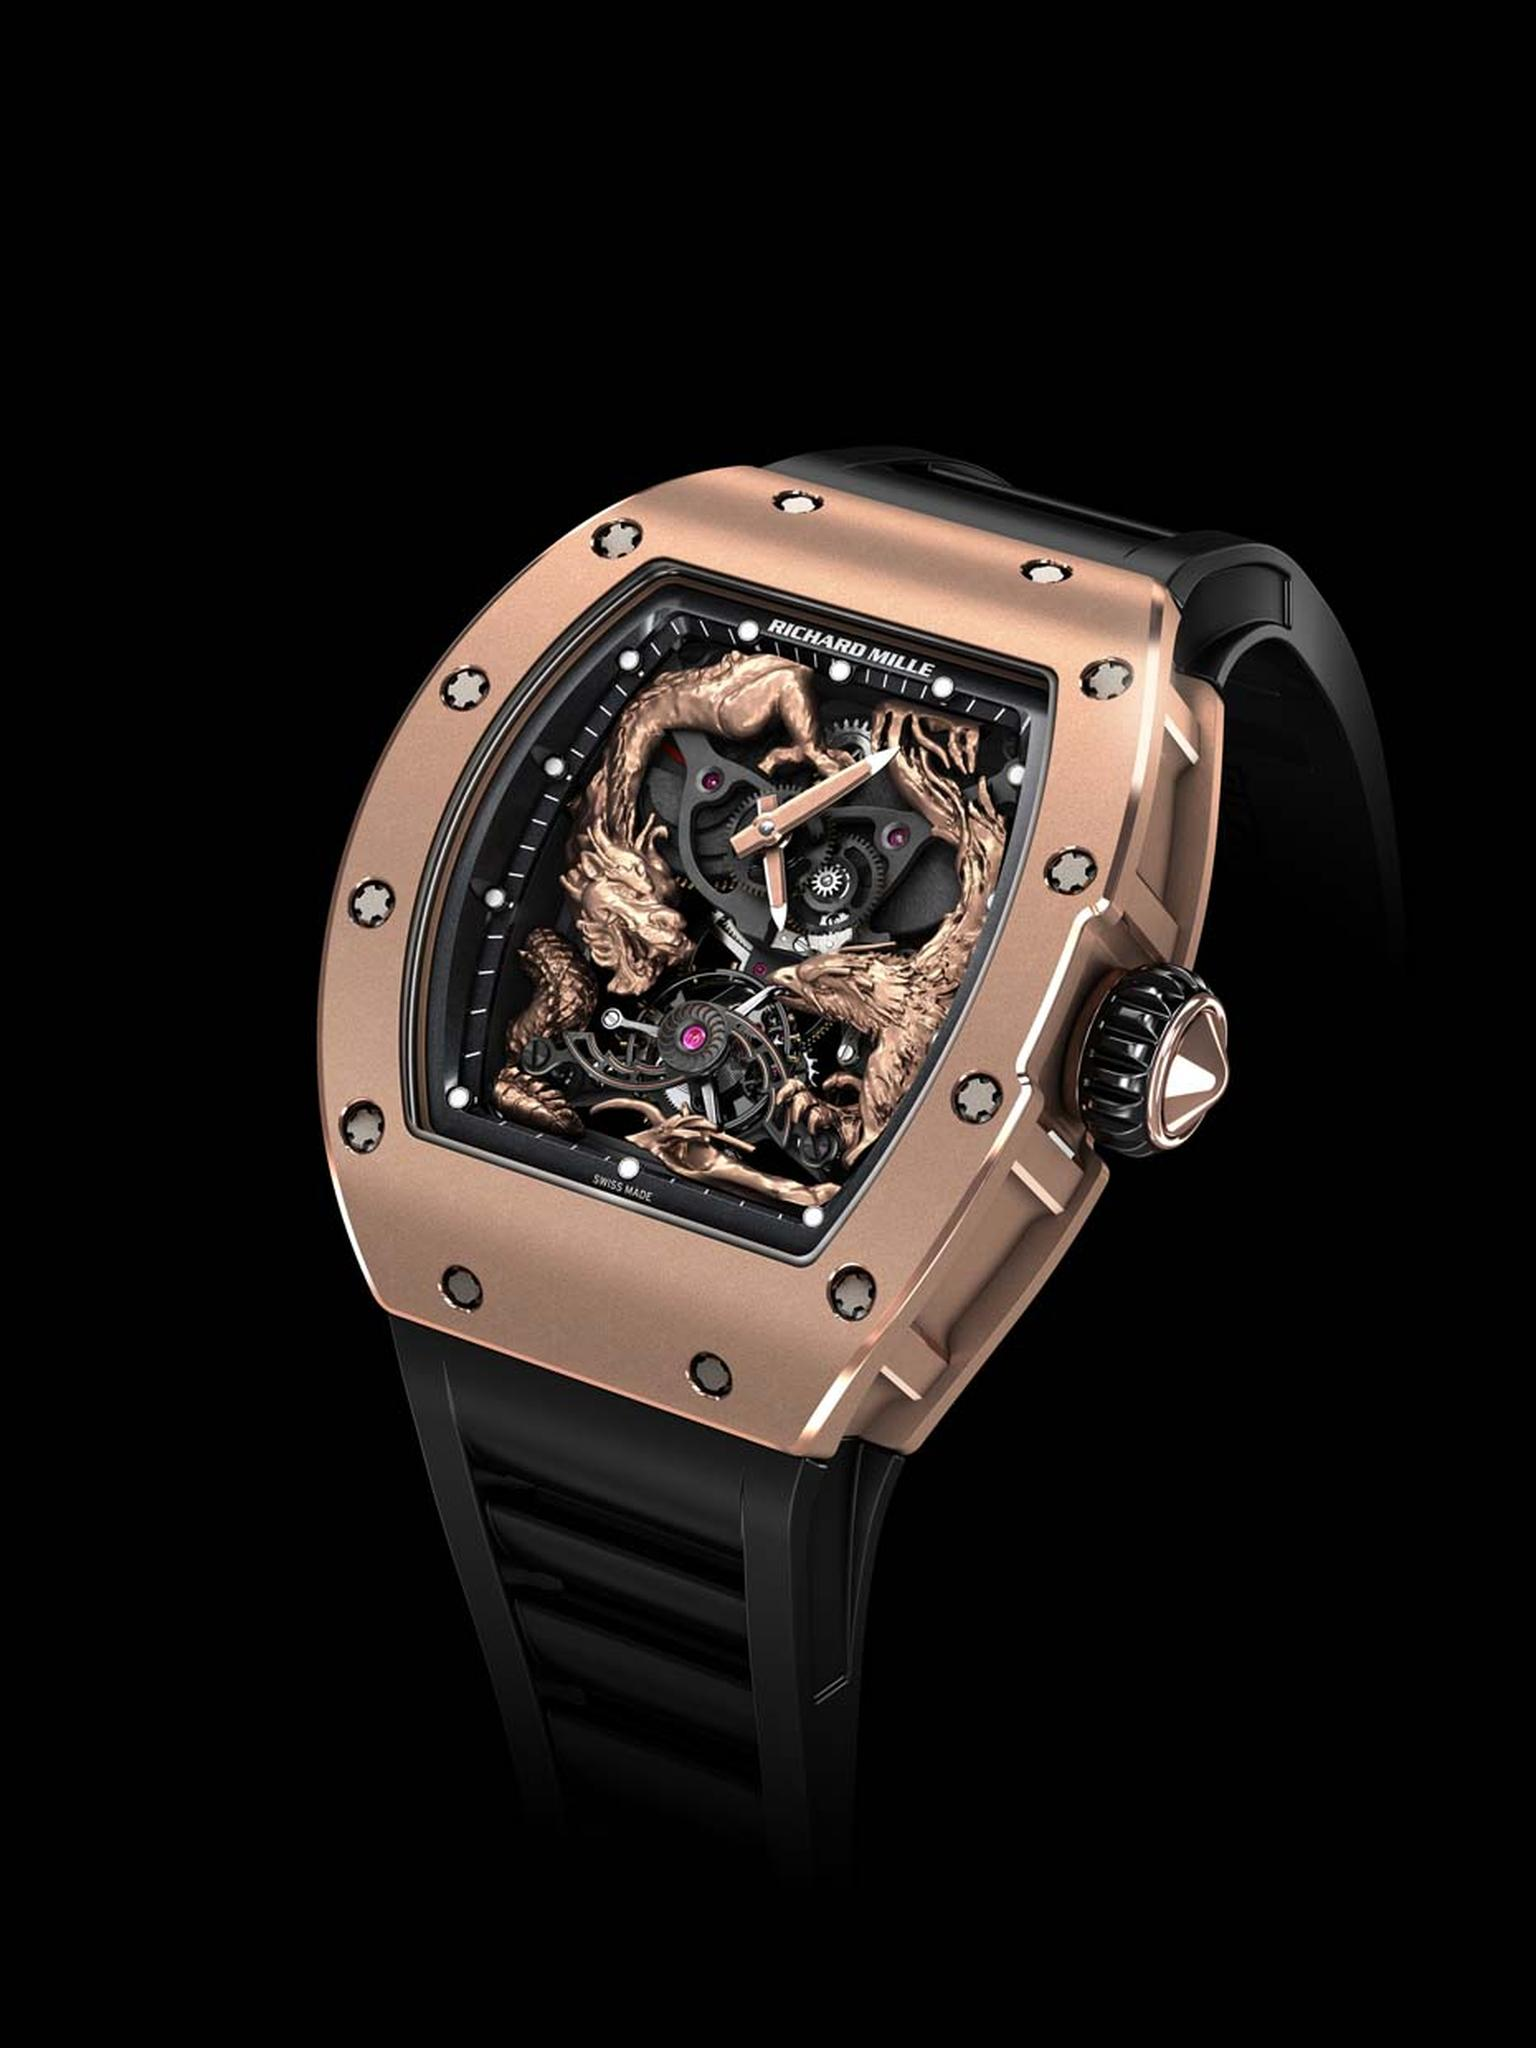 The Richard Mille RM 57-01 Phoenix and Dragon Jackie Chan watch features a hand-sculpted rose gold dragon curled around the left side of the case and a phoenix, wings spread in flight, on the right.